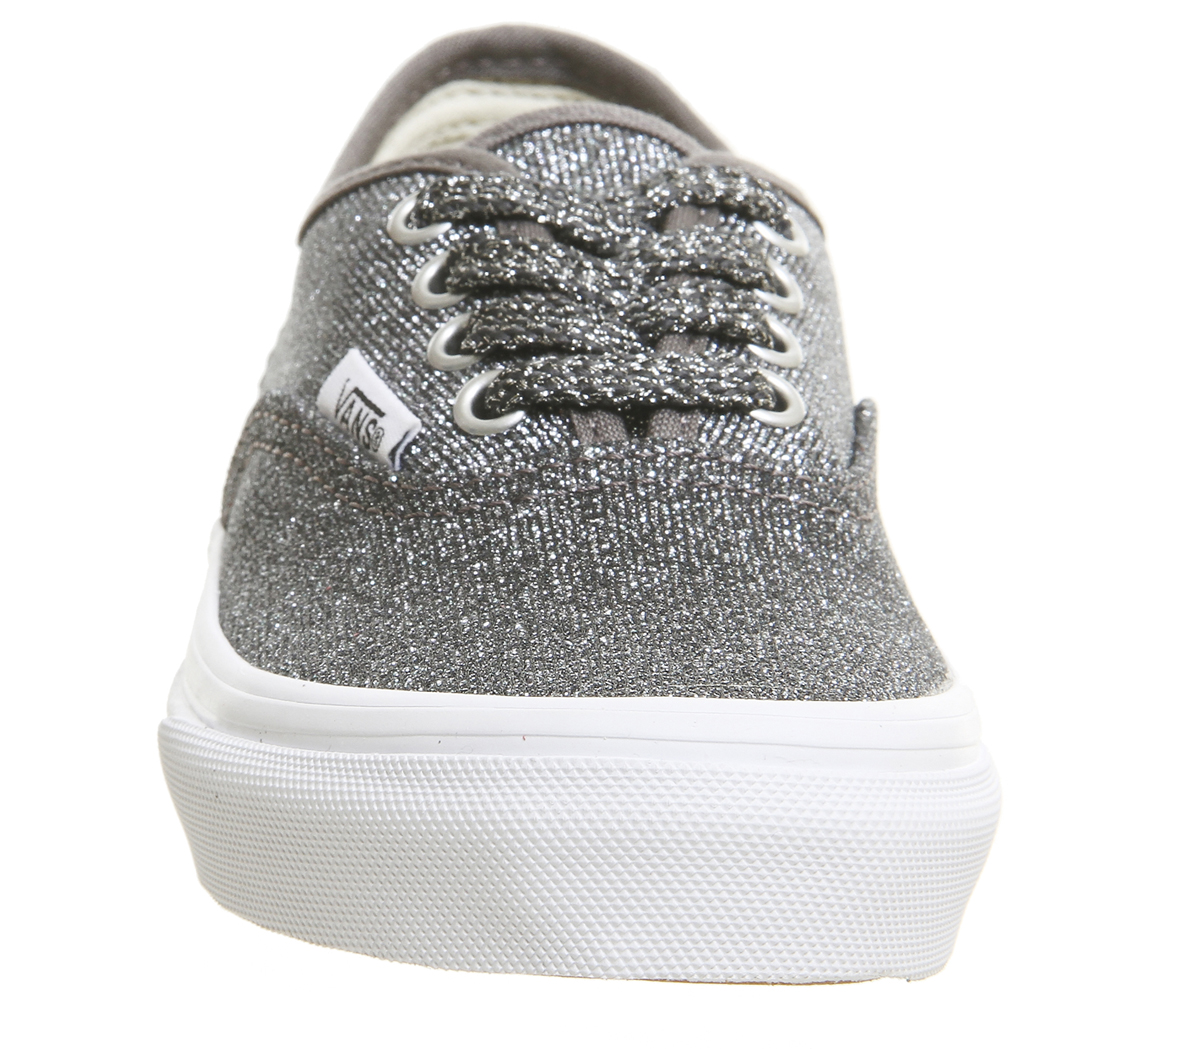 ad3b7dd5c4 Sentinel Kids Vans Authentic Kids Trainers Black True White Glitter Kids